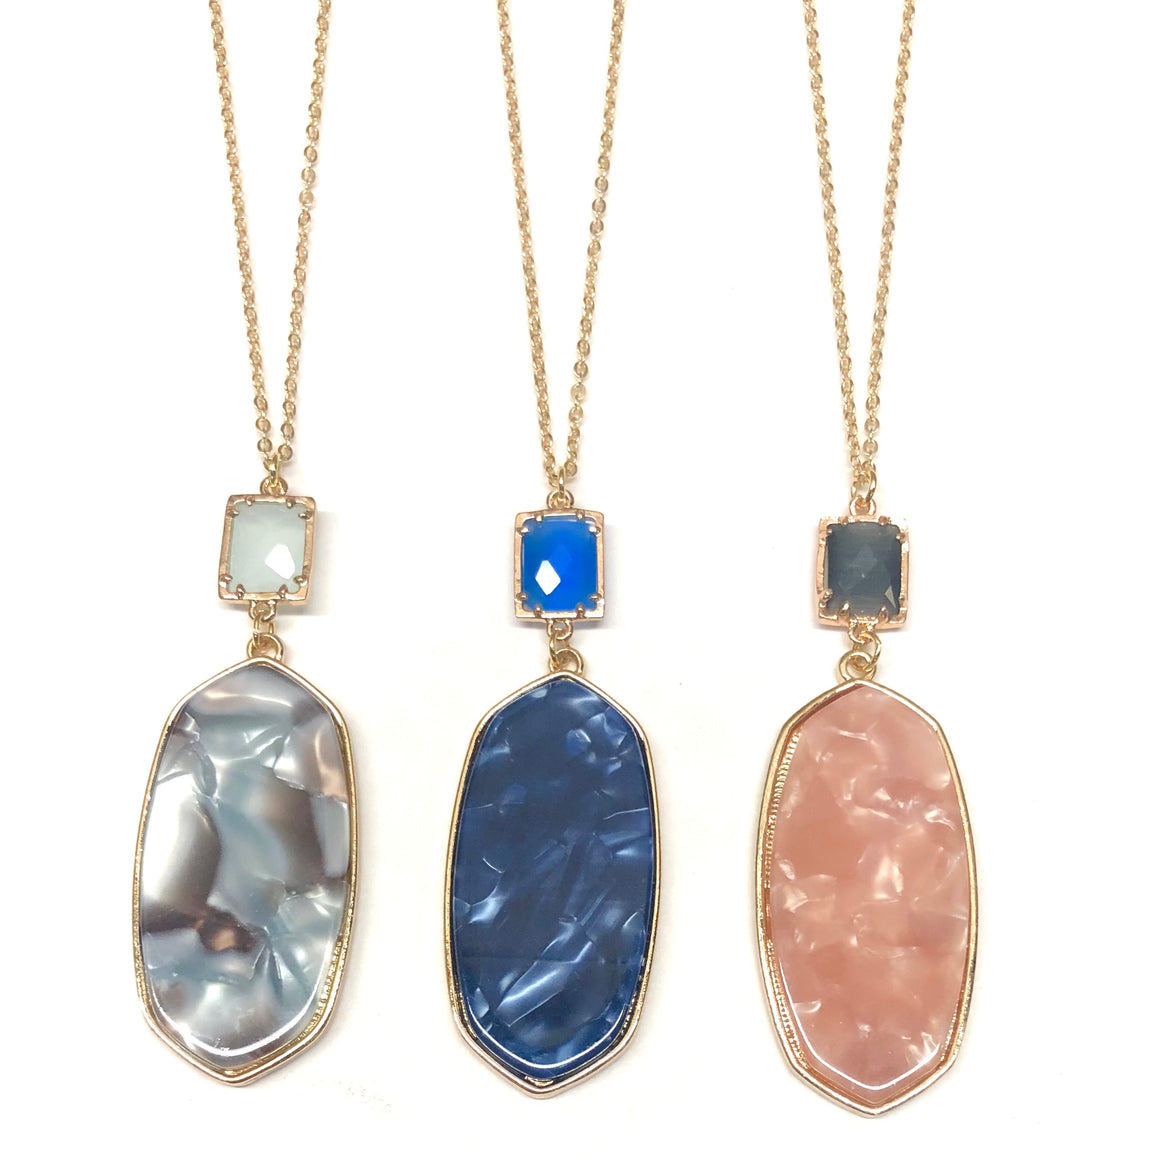 Emma Gem Drop Long Necklaces - Nikki Smith Designs